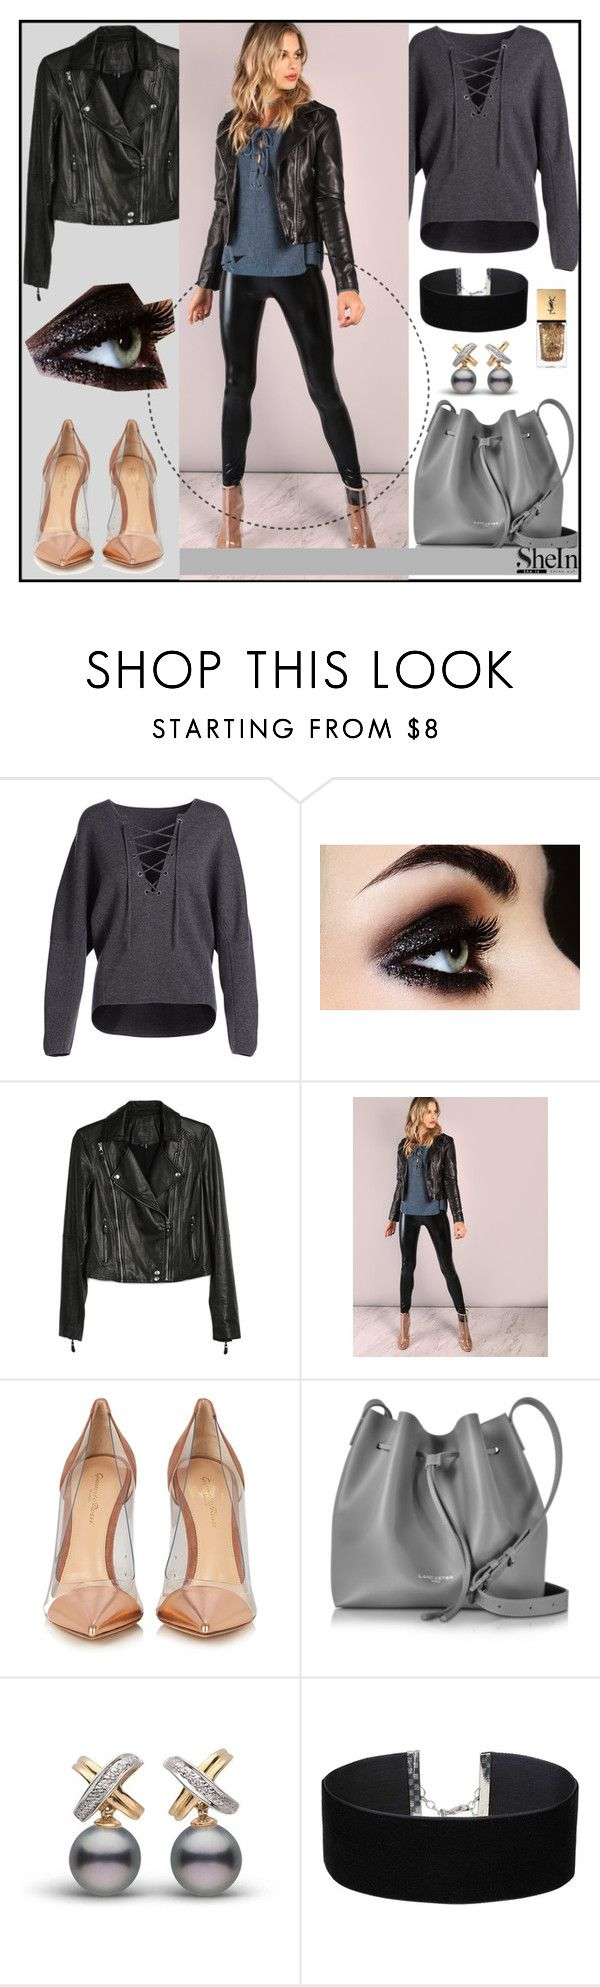 """Shein black leggings"" by meljoh ❤ liked on Polyvore featuring Vince, Paige Denim, Gianvito Rossi, Lancaster, Miss Selfridge, Yves Saint Laurent, contest, Sheinside, contestentry and shein"